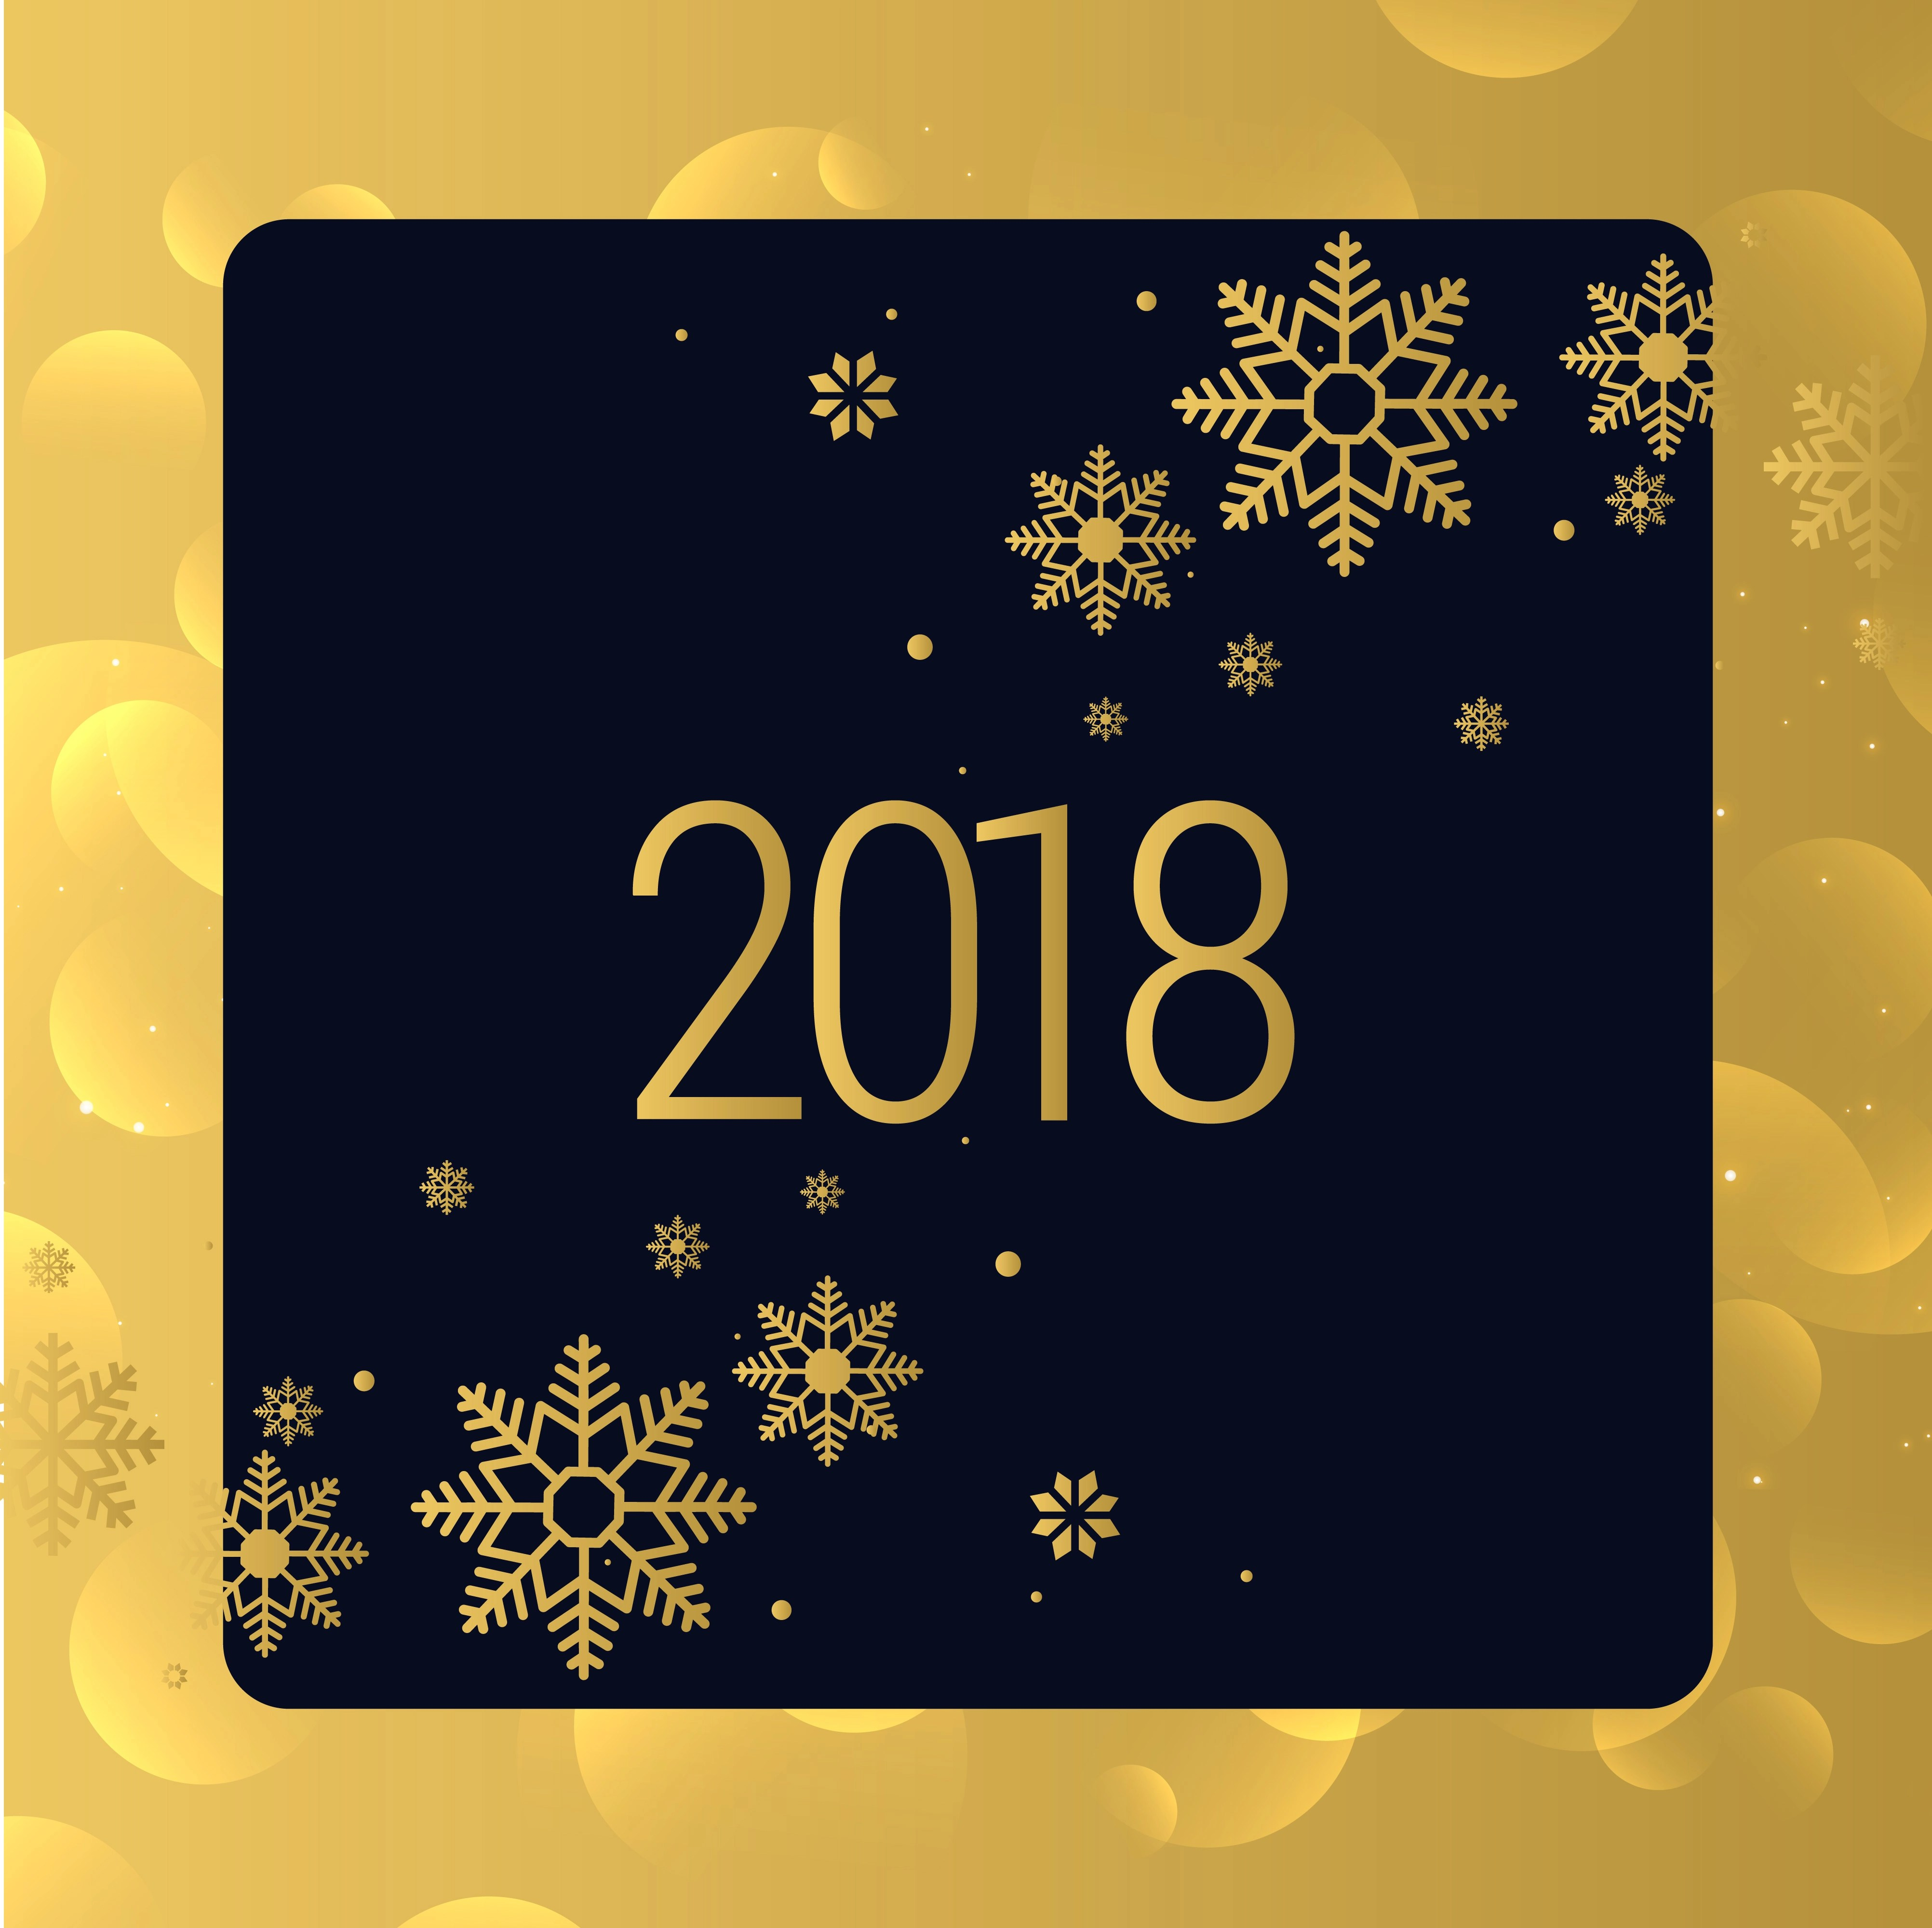 Falling Gold Sparkles Wallpaper Luxury Golden 2018 New Year Background Design Download